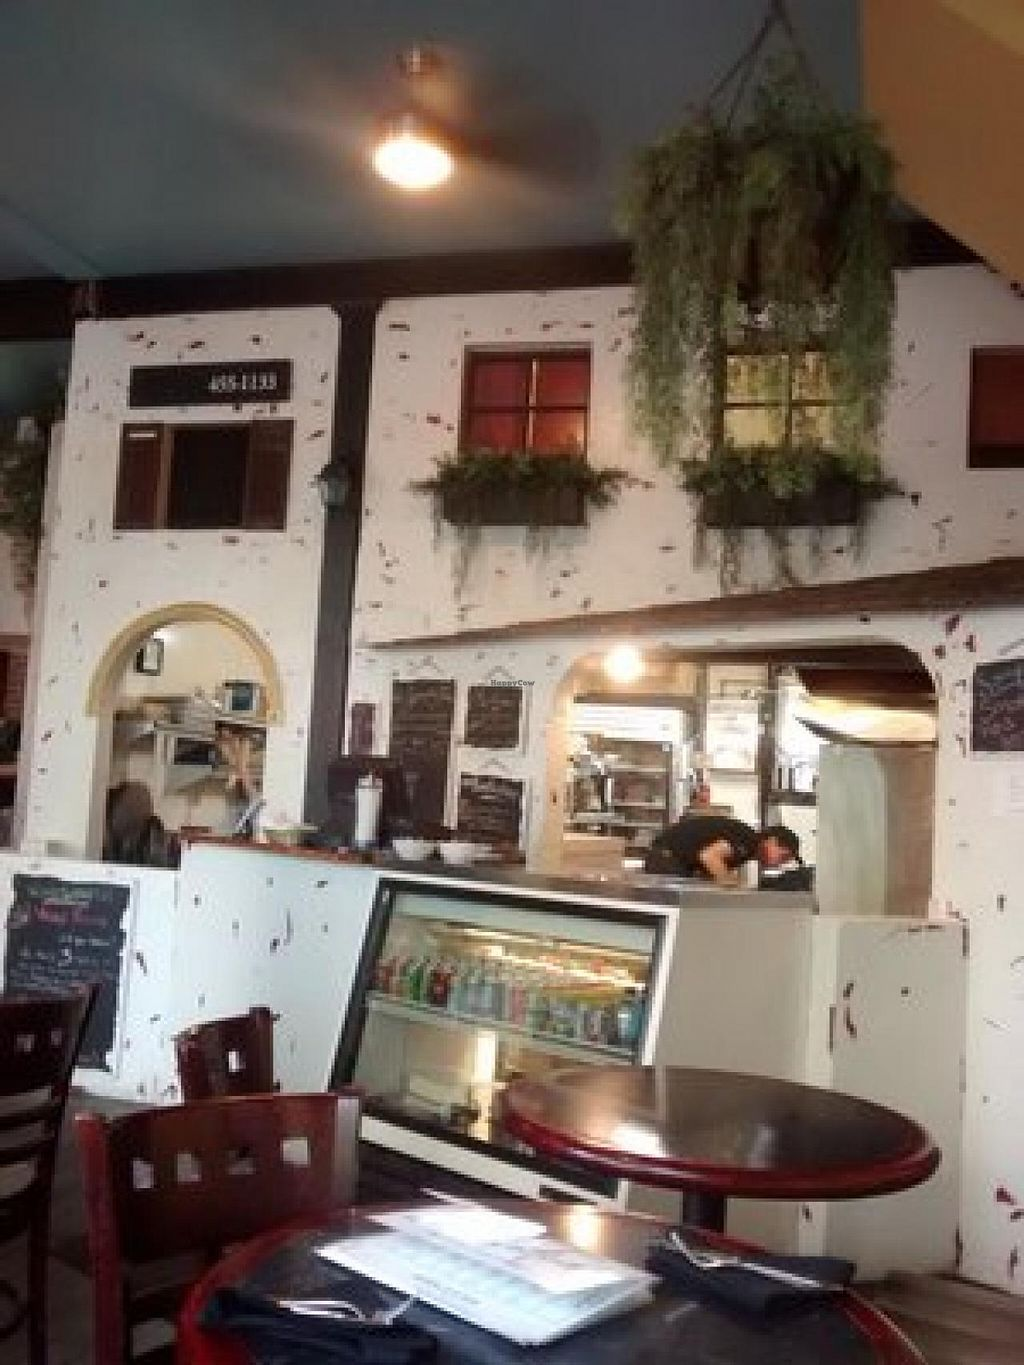 """Photo of Salvatore's   by <a href=""""/members/profile/QuothTheRaven"""">QuothTheRaven</a> <br/>Inside <br/> June 8, 2015  - <a href='/contact/abuse/image/59197/105156'>Report</a>"""